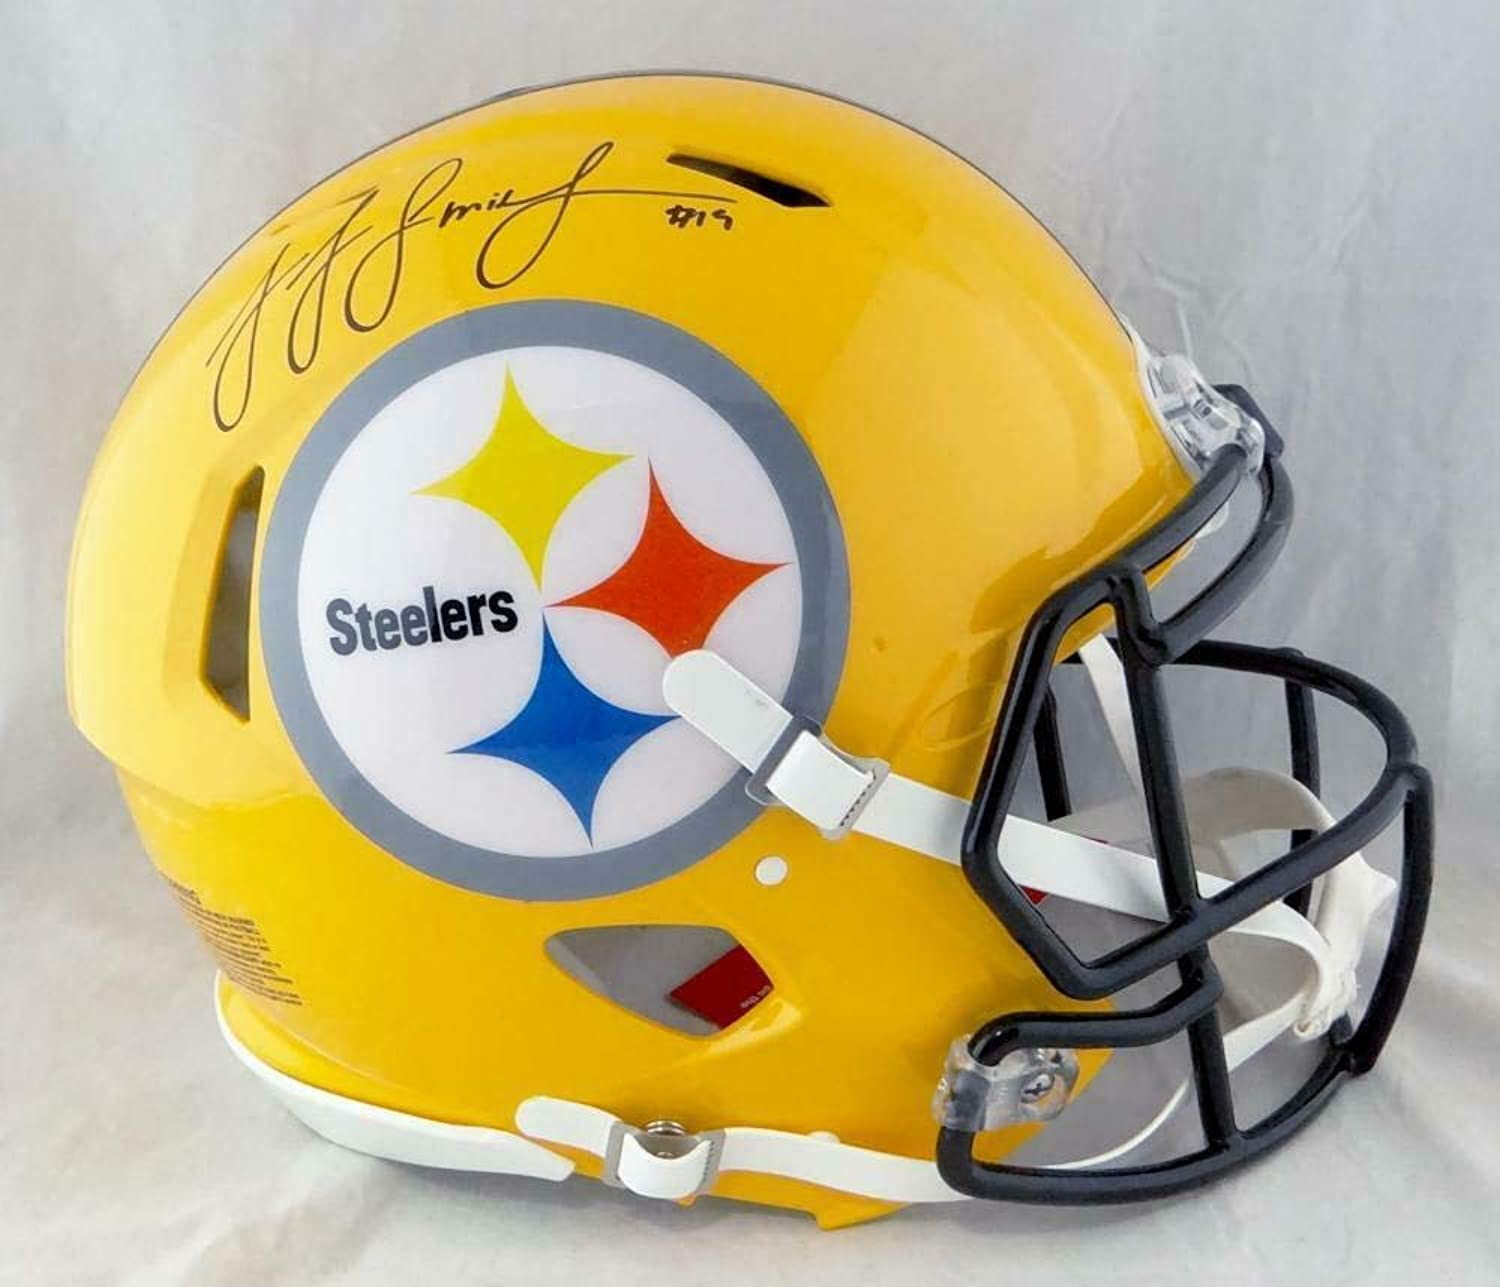 Signed Juju SmithSchuster Helmet  F S Yellow Speed Authentic Beckett W  Beckett Authentication  Autographed NFL Helmets